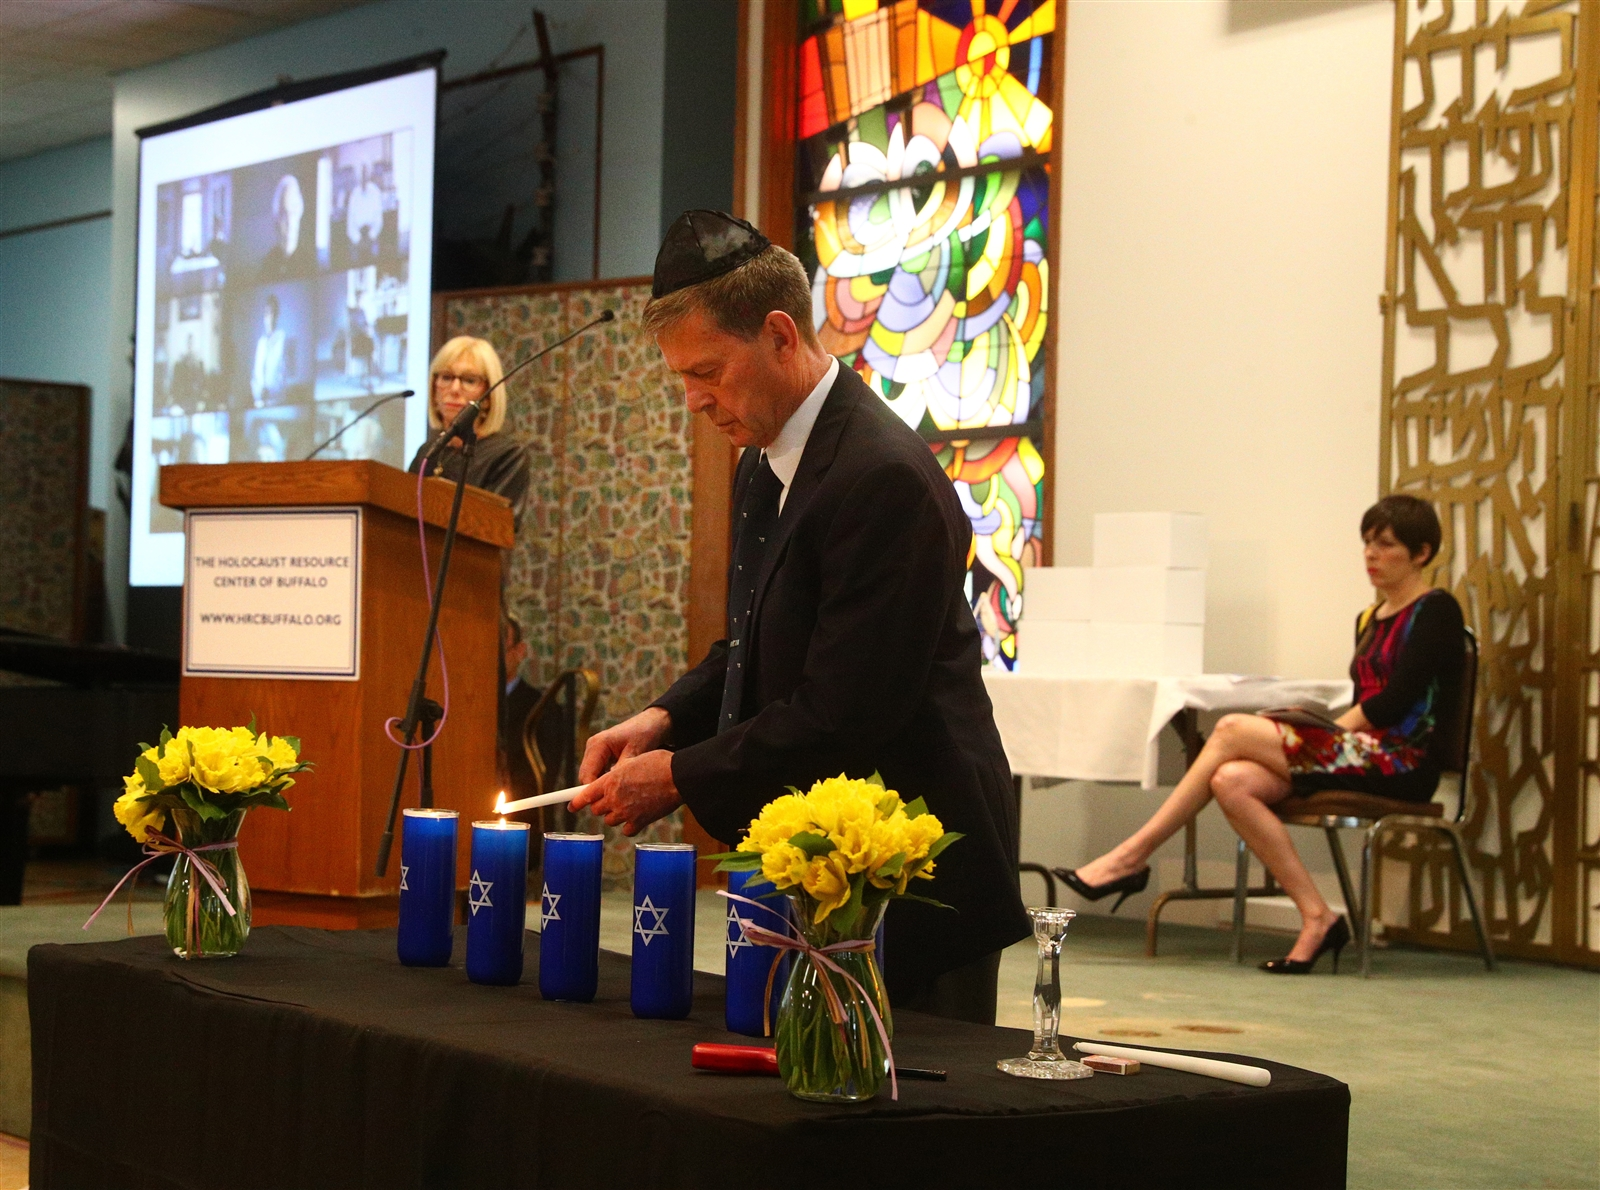 Peter Forgach lights a candle at the 2018 Yom HaShoah Commemoration.